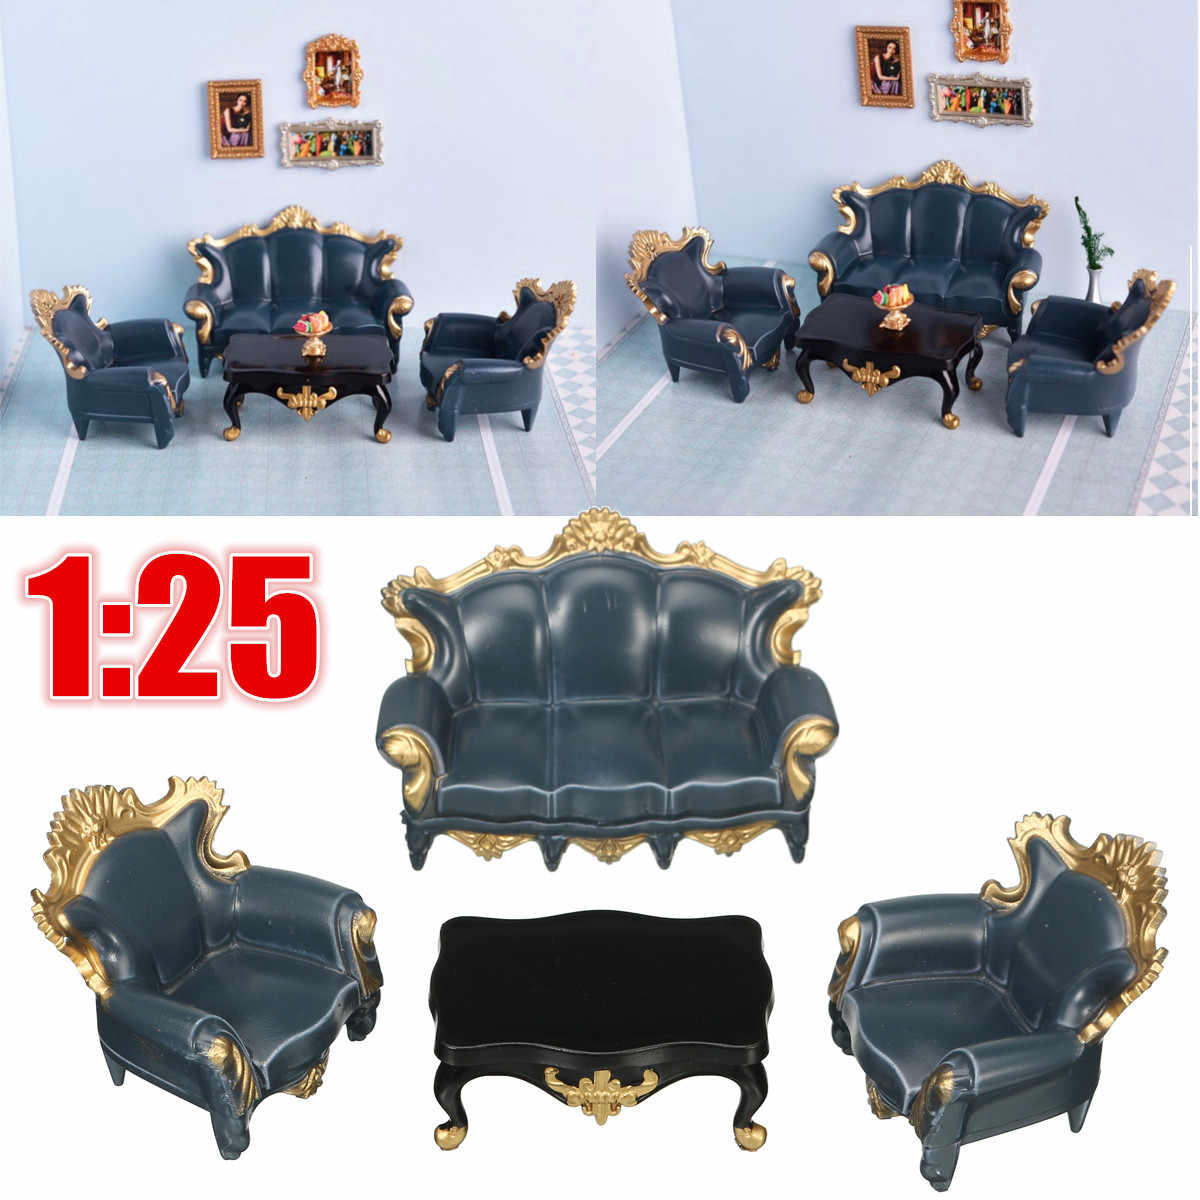 4Pcs 1:25 Scale Dollhouse Blue Sofa Table Toy Set Dollhouse Family Furniture Kids Home Miniature Furniture Children Gift Toys